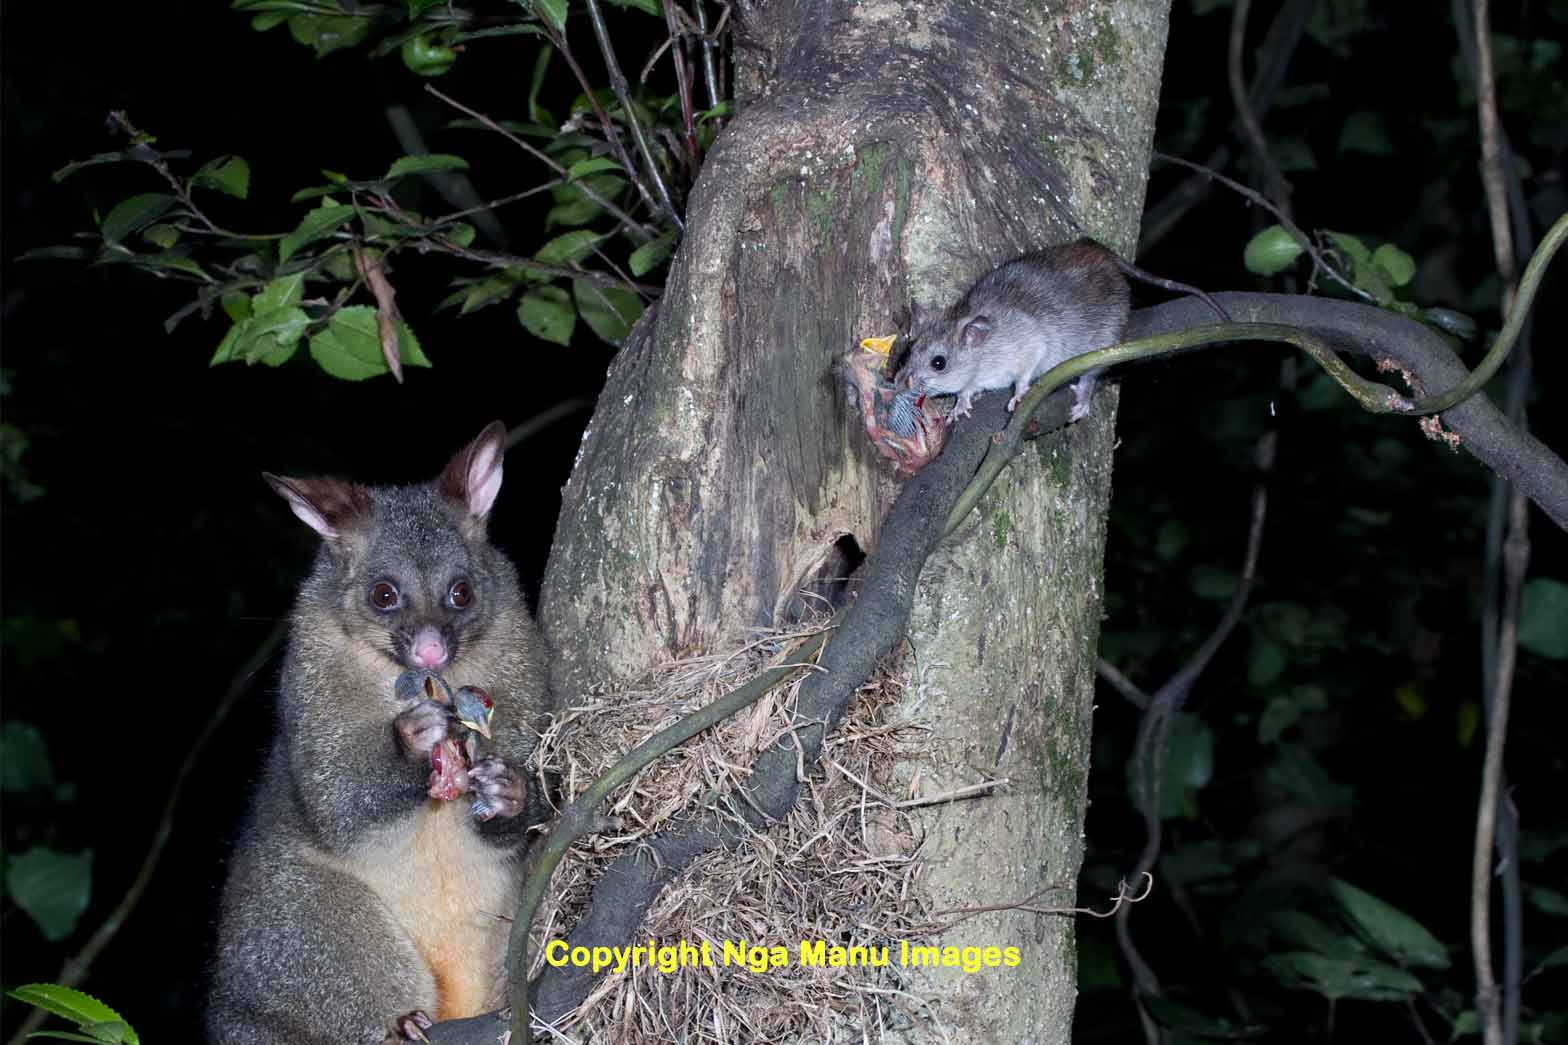 Introduced possum and rat eating native NZ bird chicks. Image source: http://www.ngamanuimages.org.nz/image.php?image_id=459